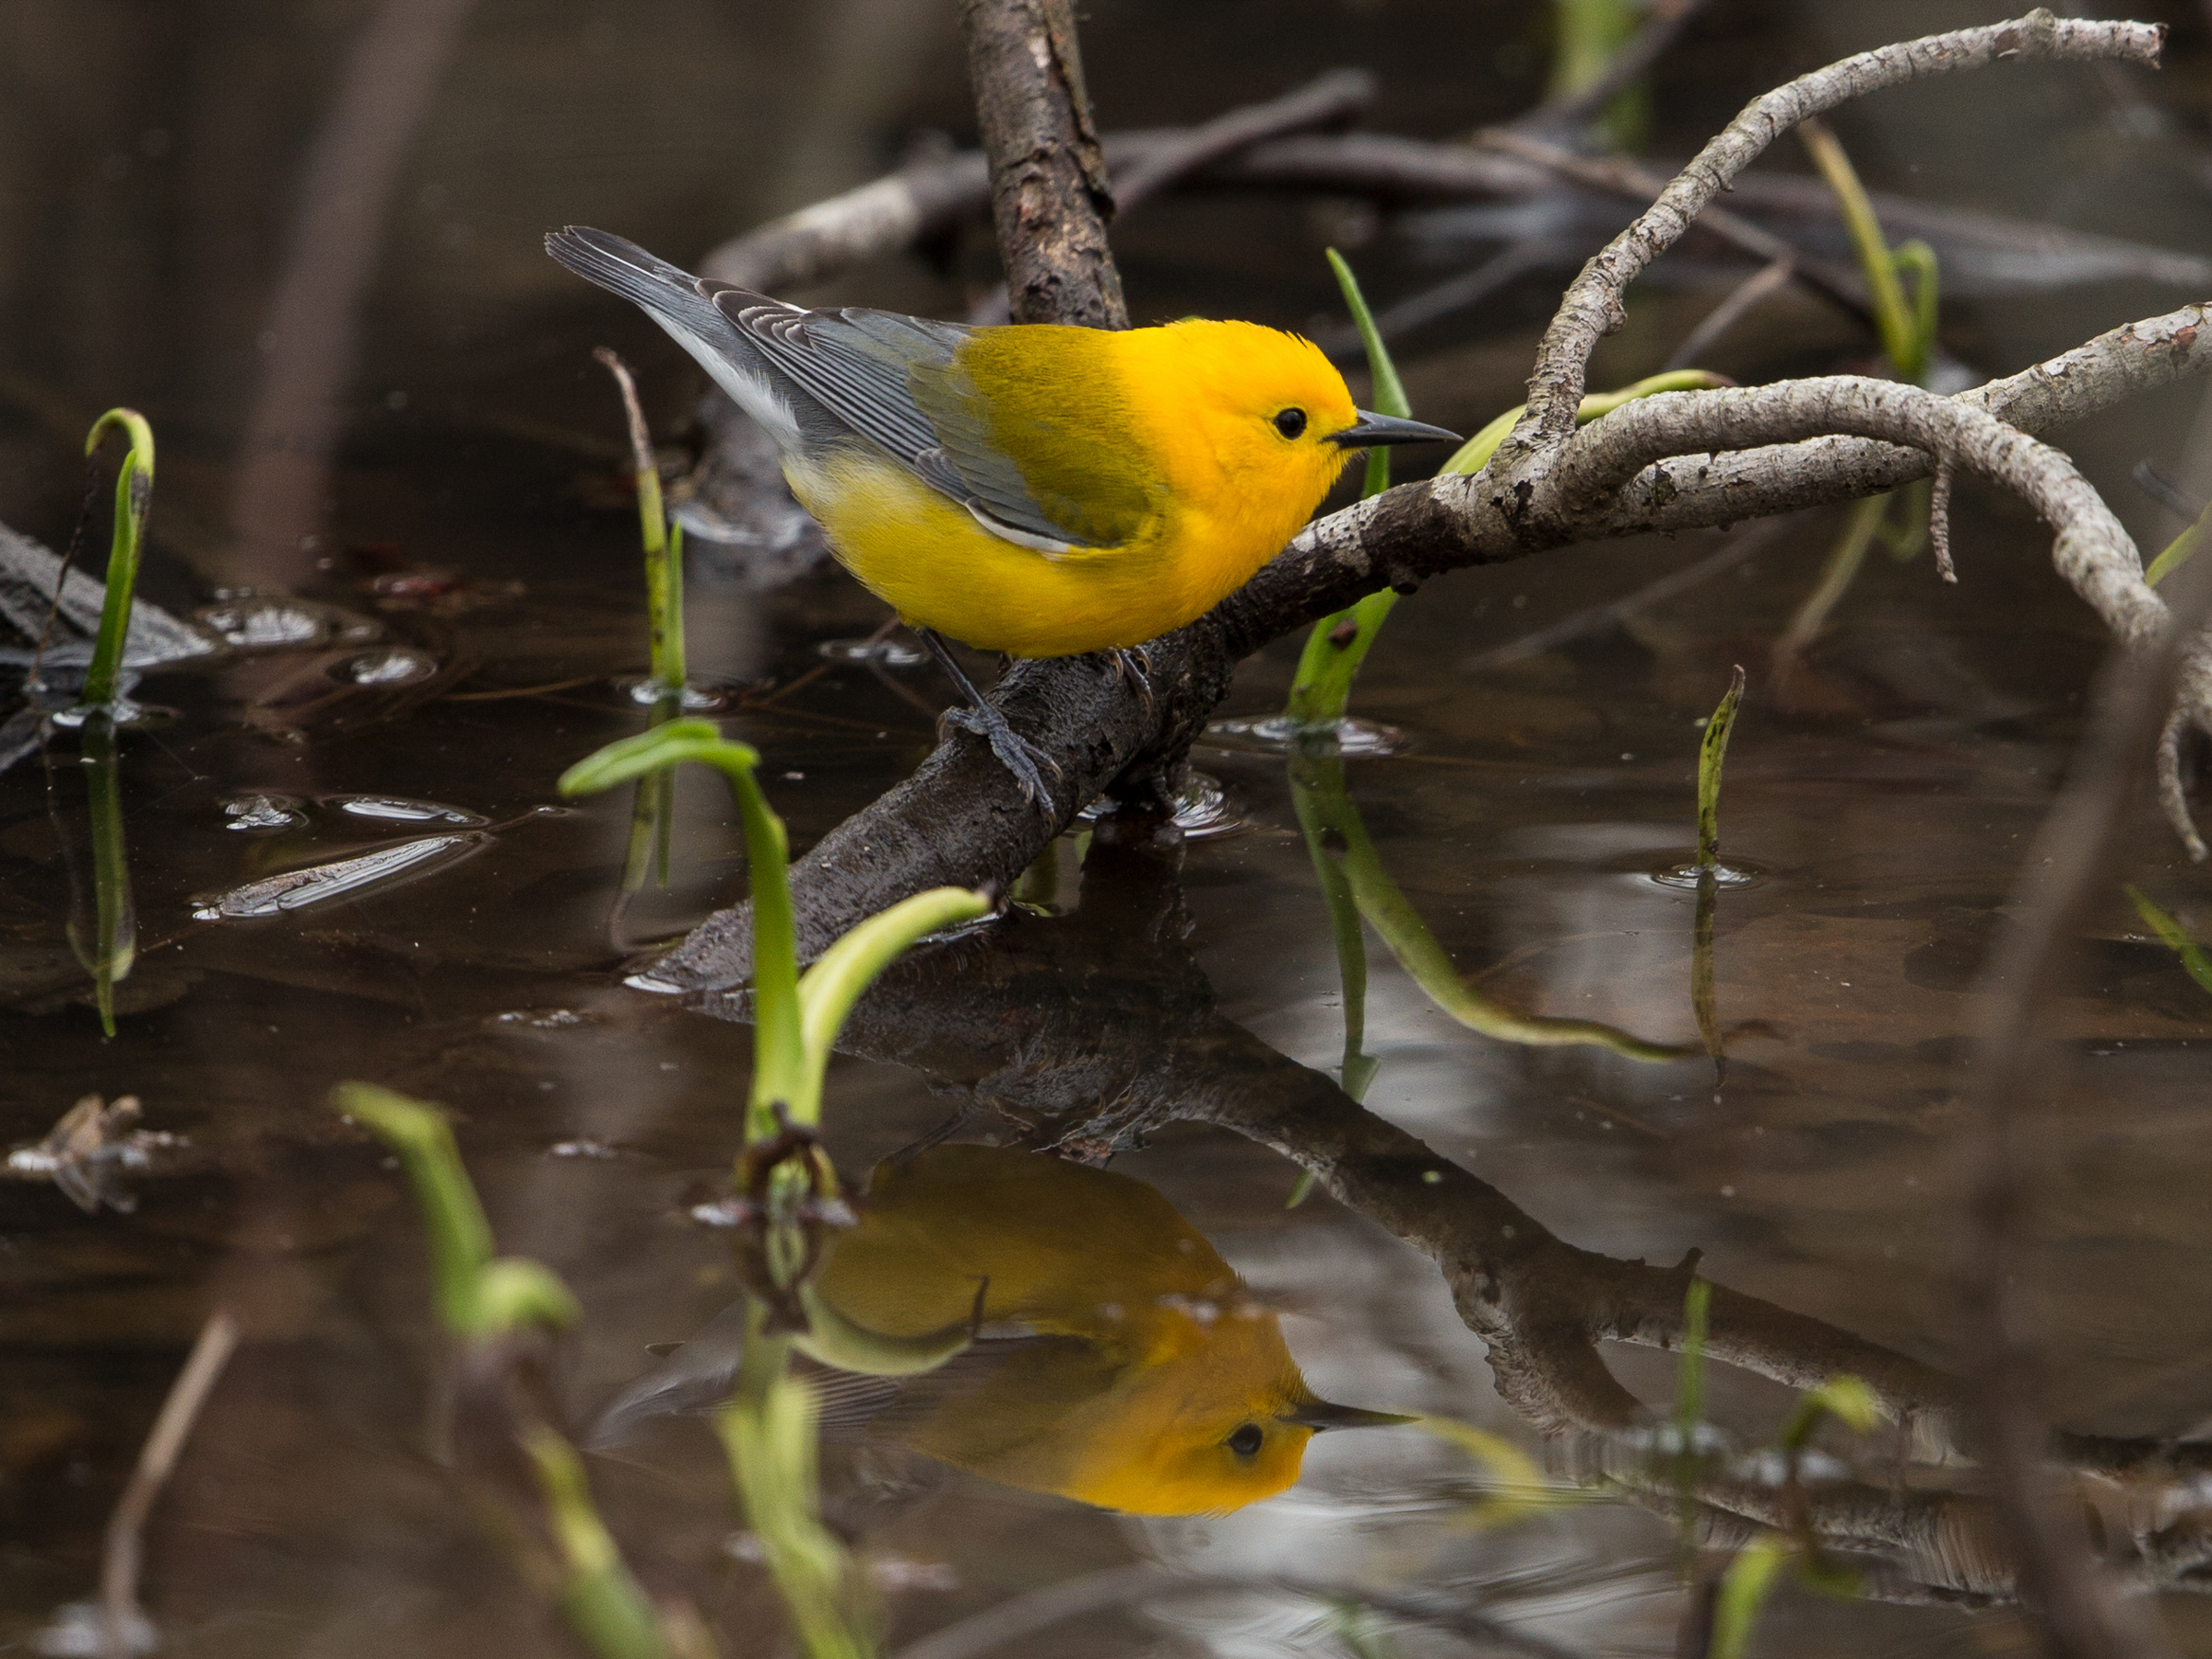 Prothonotary Warblers rely heavily on the Yazoo Backwater Area during spring migration. Gary Robinette/Audubon Photography Awards